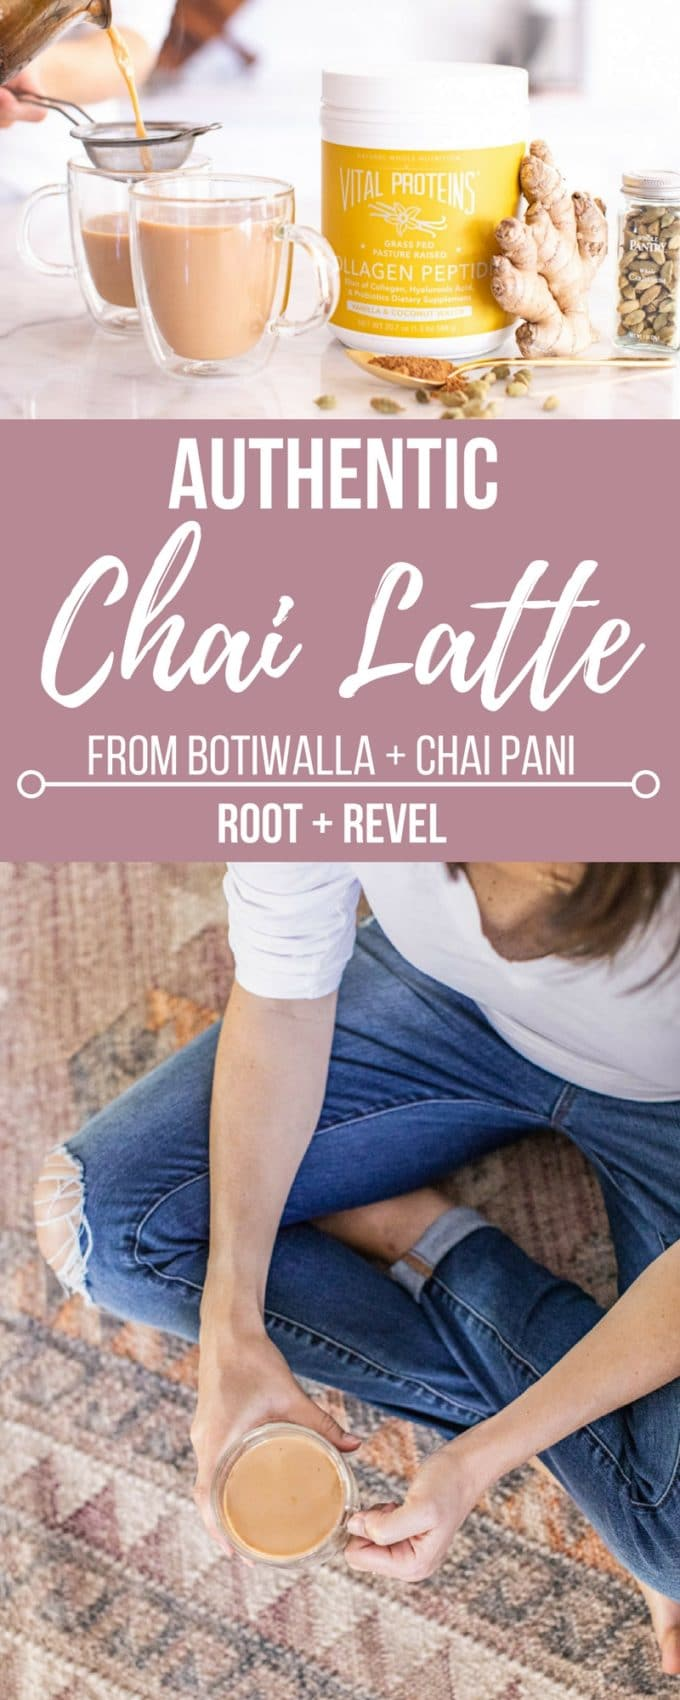 This authentic Chai Latte recipe comes from famed Indian restaurant, Botiwalla in Atlanta. Anti-inflammatory, chockfull of antioxidants and super creamy and decadent, this healthy chai tea latte is the perfect example of good and good for you! No processed concentrate, homemade, spicy and delicious!